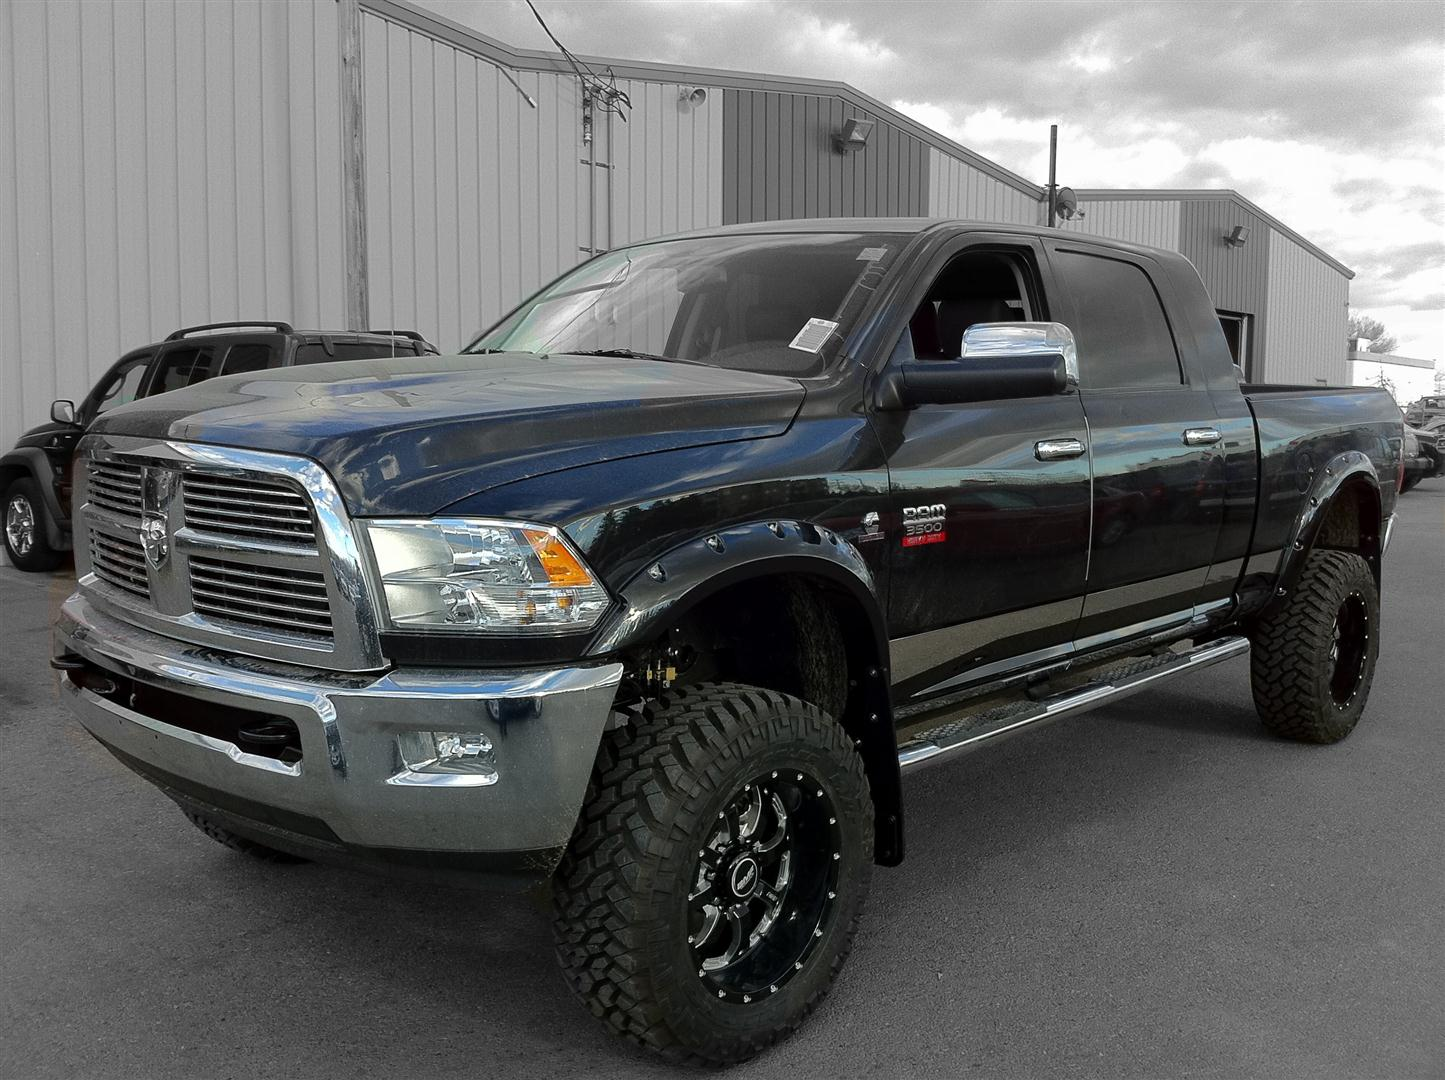 ... and 2012 dodge ram 3500 and huge selection of used dodge ram trucks